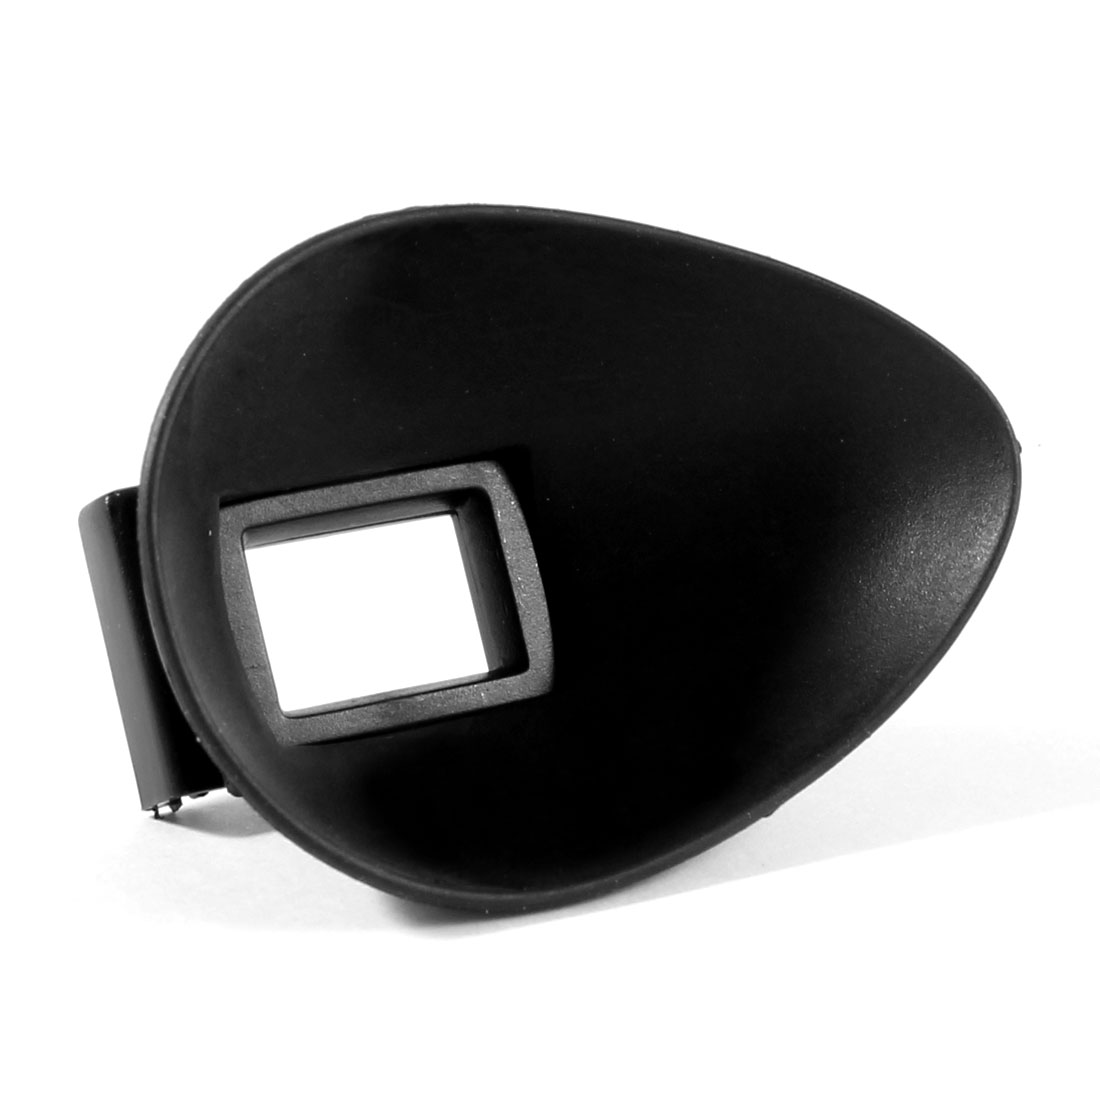 22mm Rubber Eyepiece Eyecup Blinder for Nikon F80 F65 F55 FM10 Camera